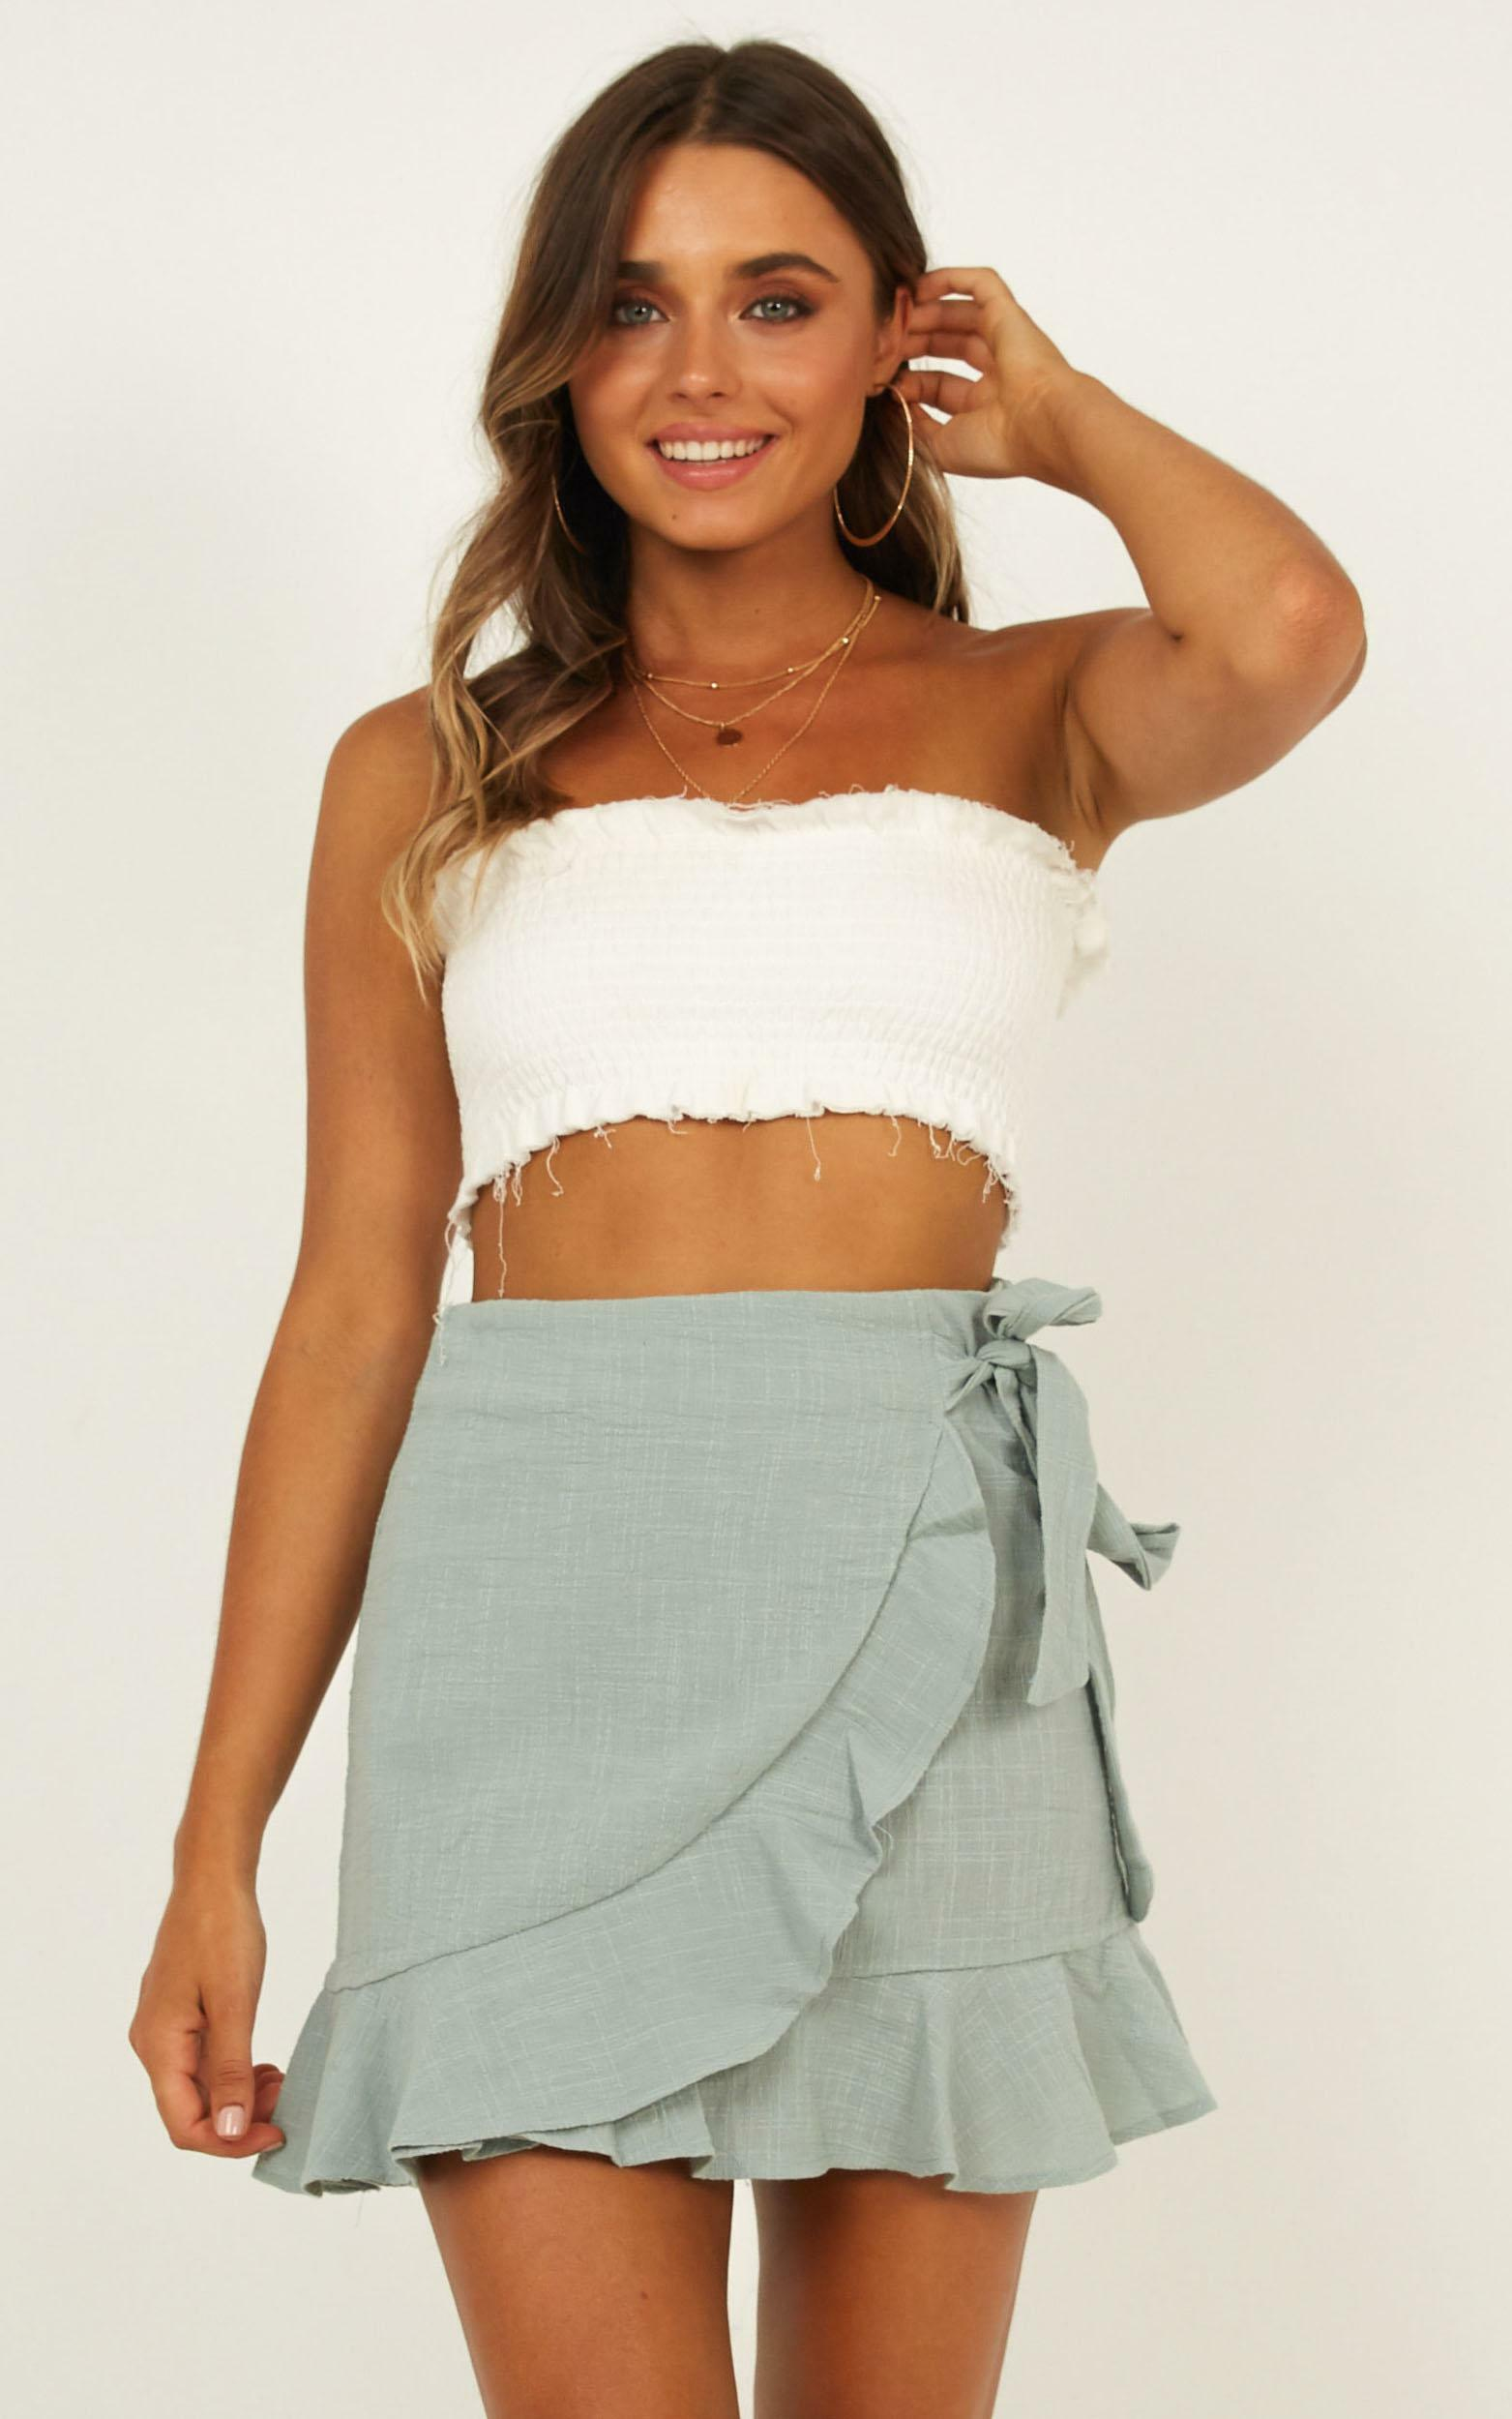 Over And Under Skirt in Sage Linen Look - 08, GRN8, hi-res image number null